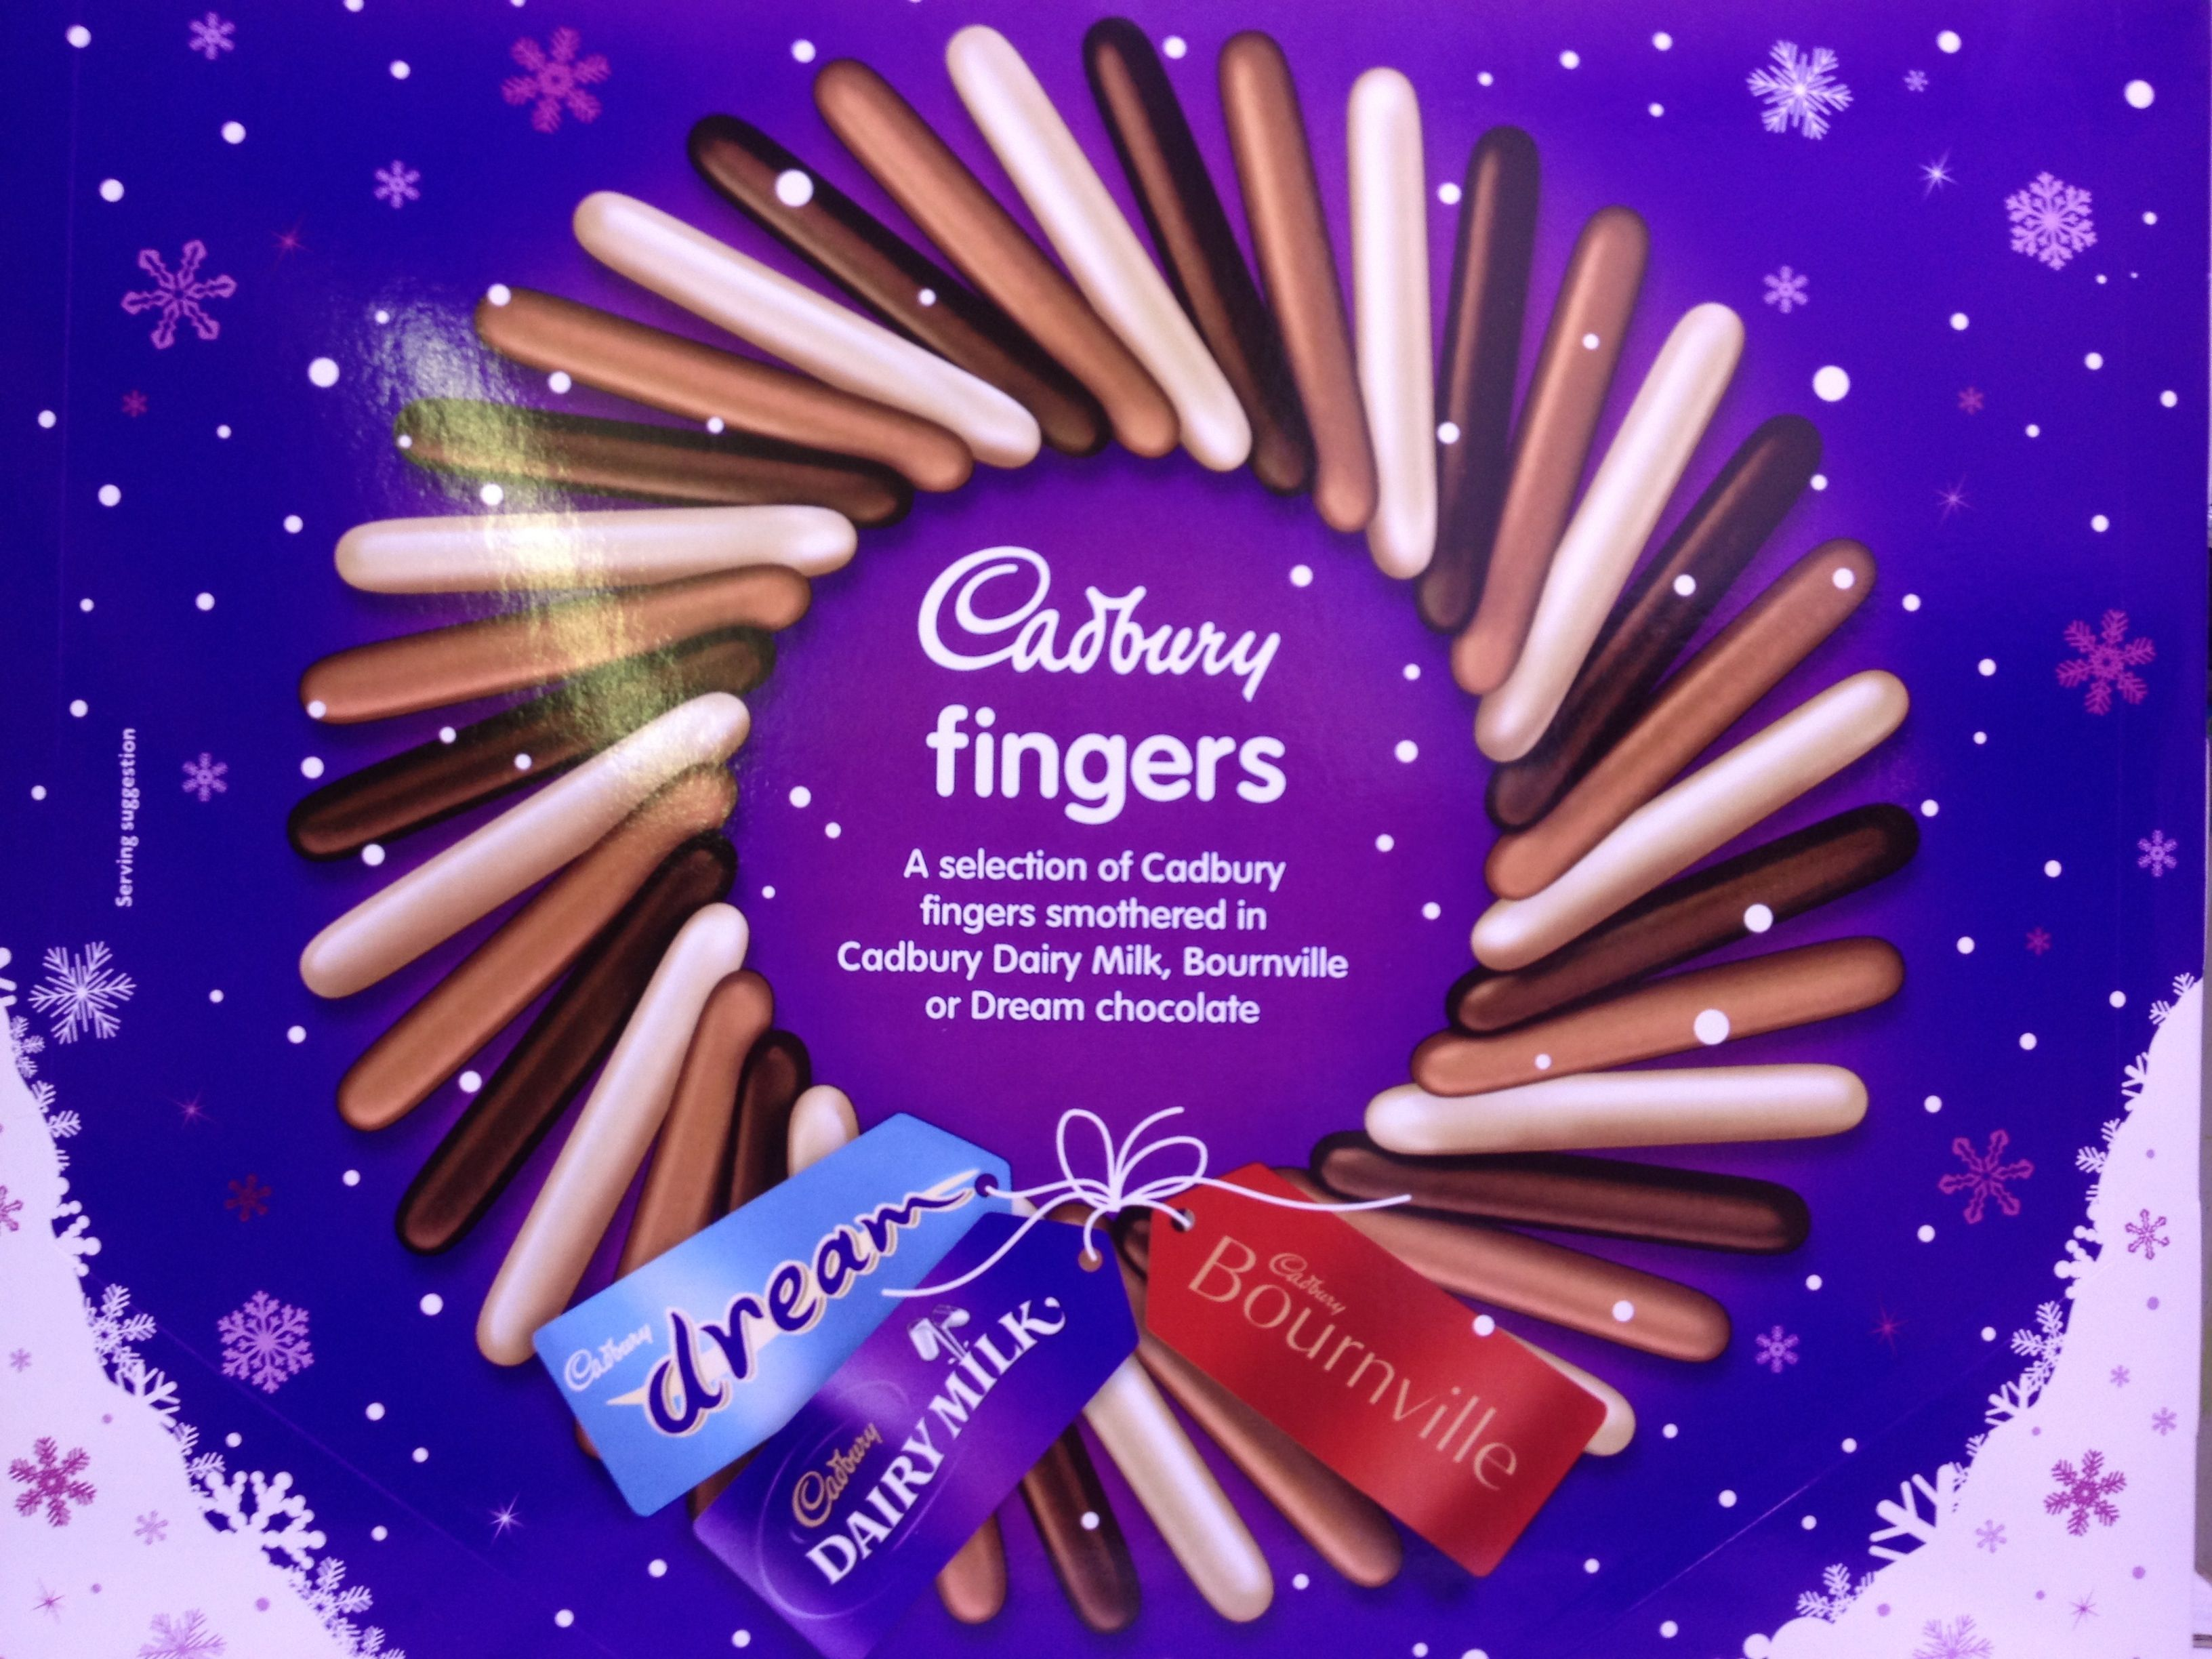 Cadbury Fingers Selection 375g. Great for Christmas!